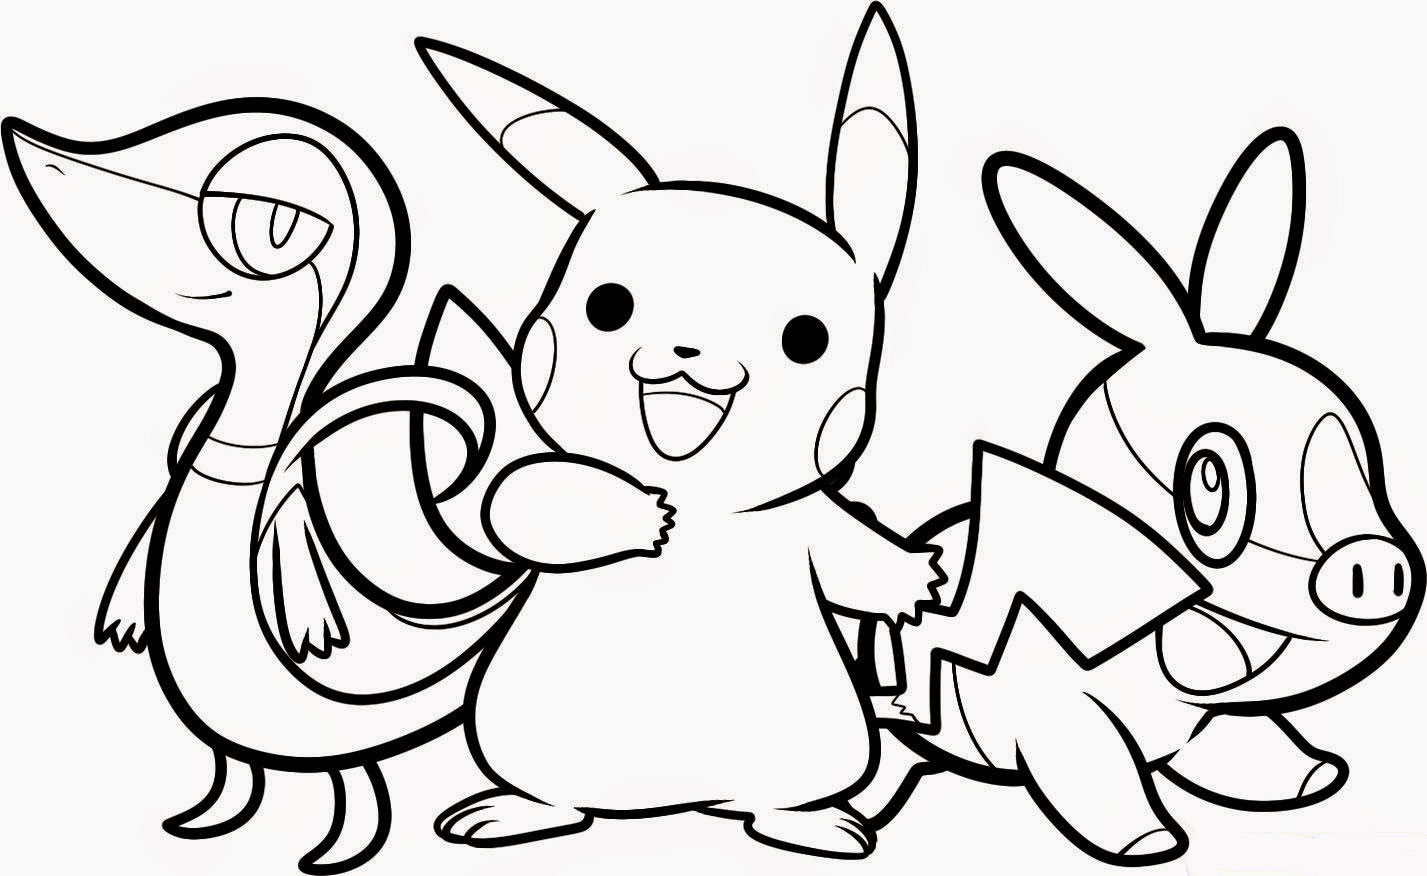 Coloriage images et dessins vacances arts guides - Dessins de pokemon ...